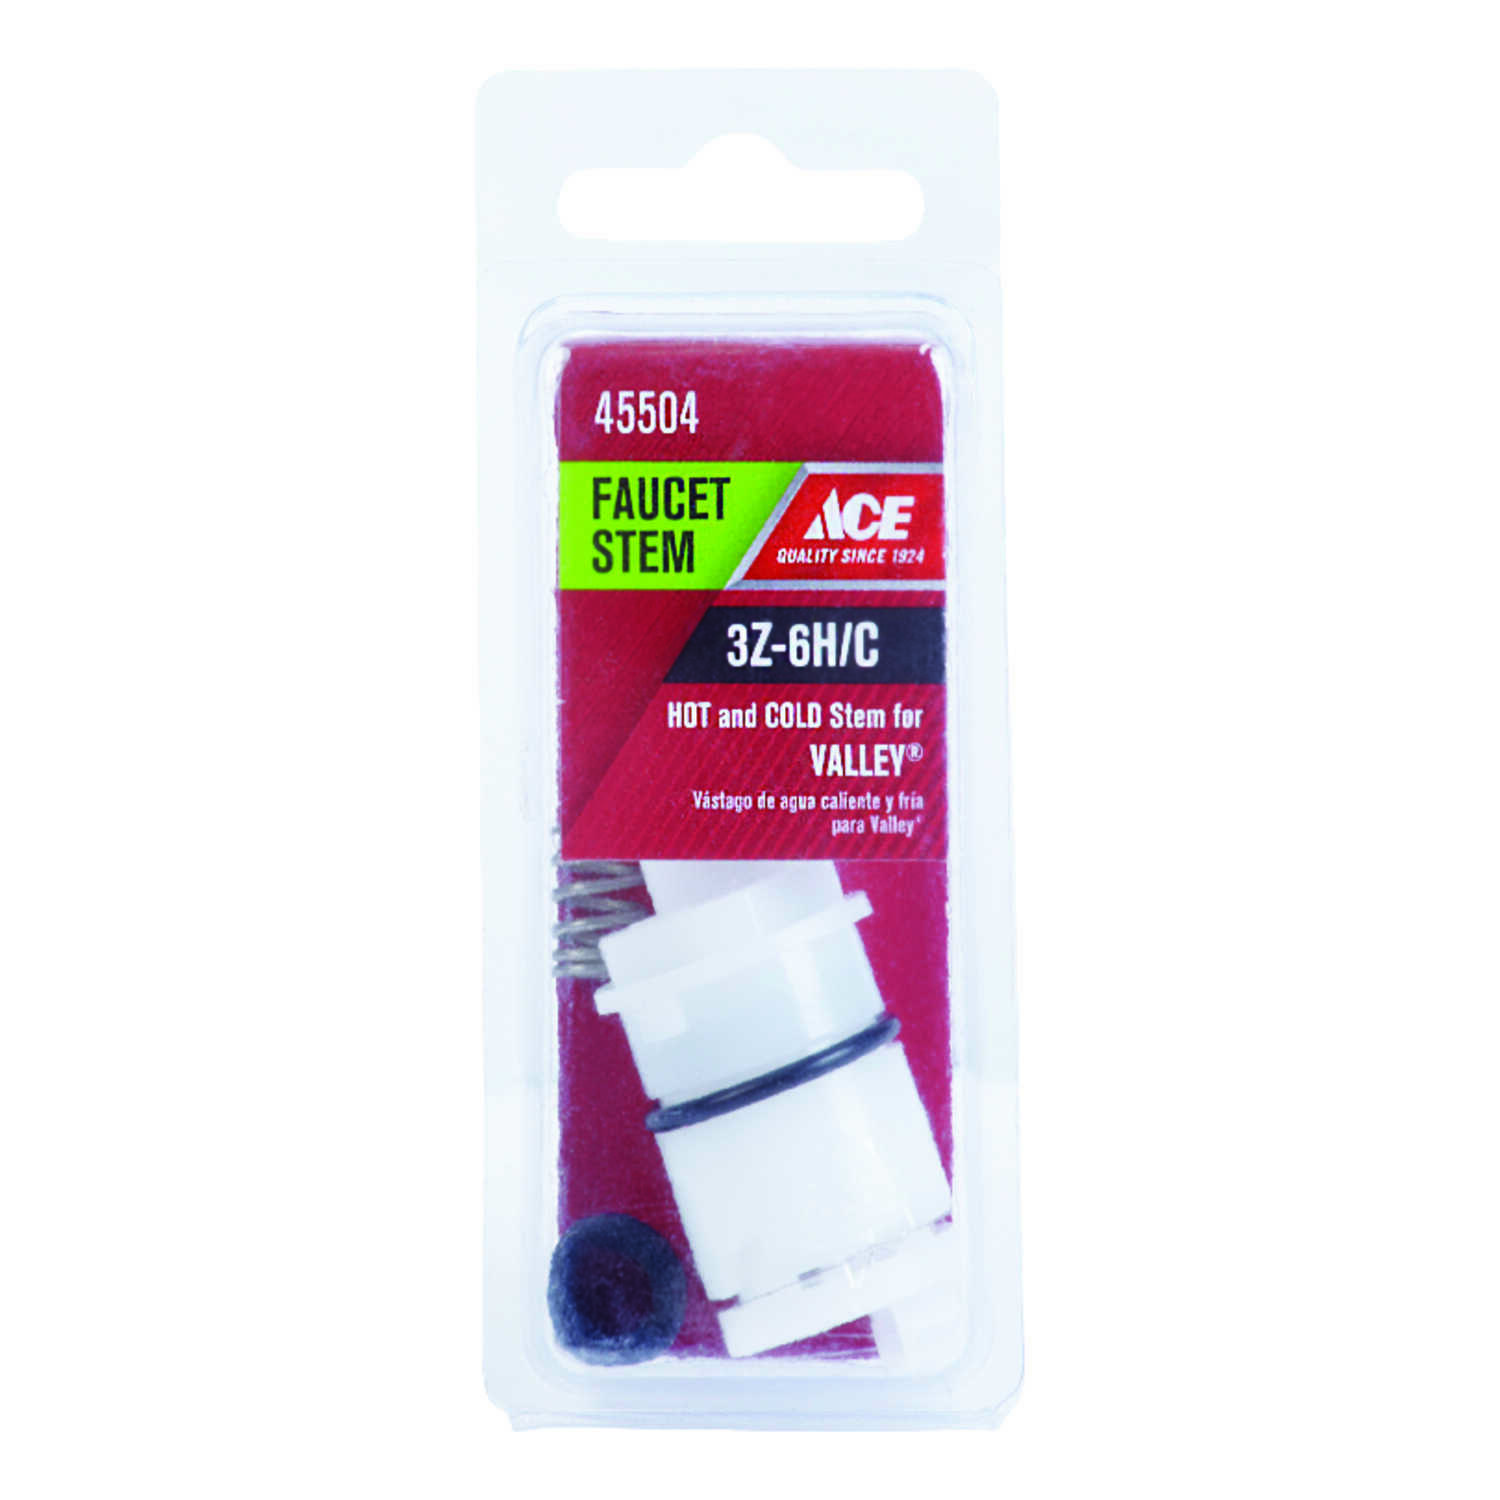 Ace  Hot and Cold  3Z-6H/C  Faucet Stem  For Valley